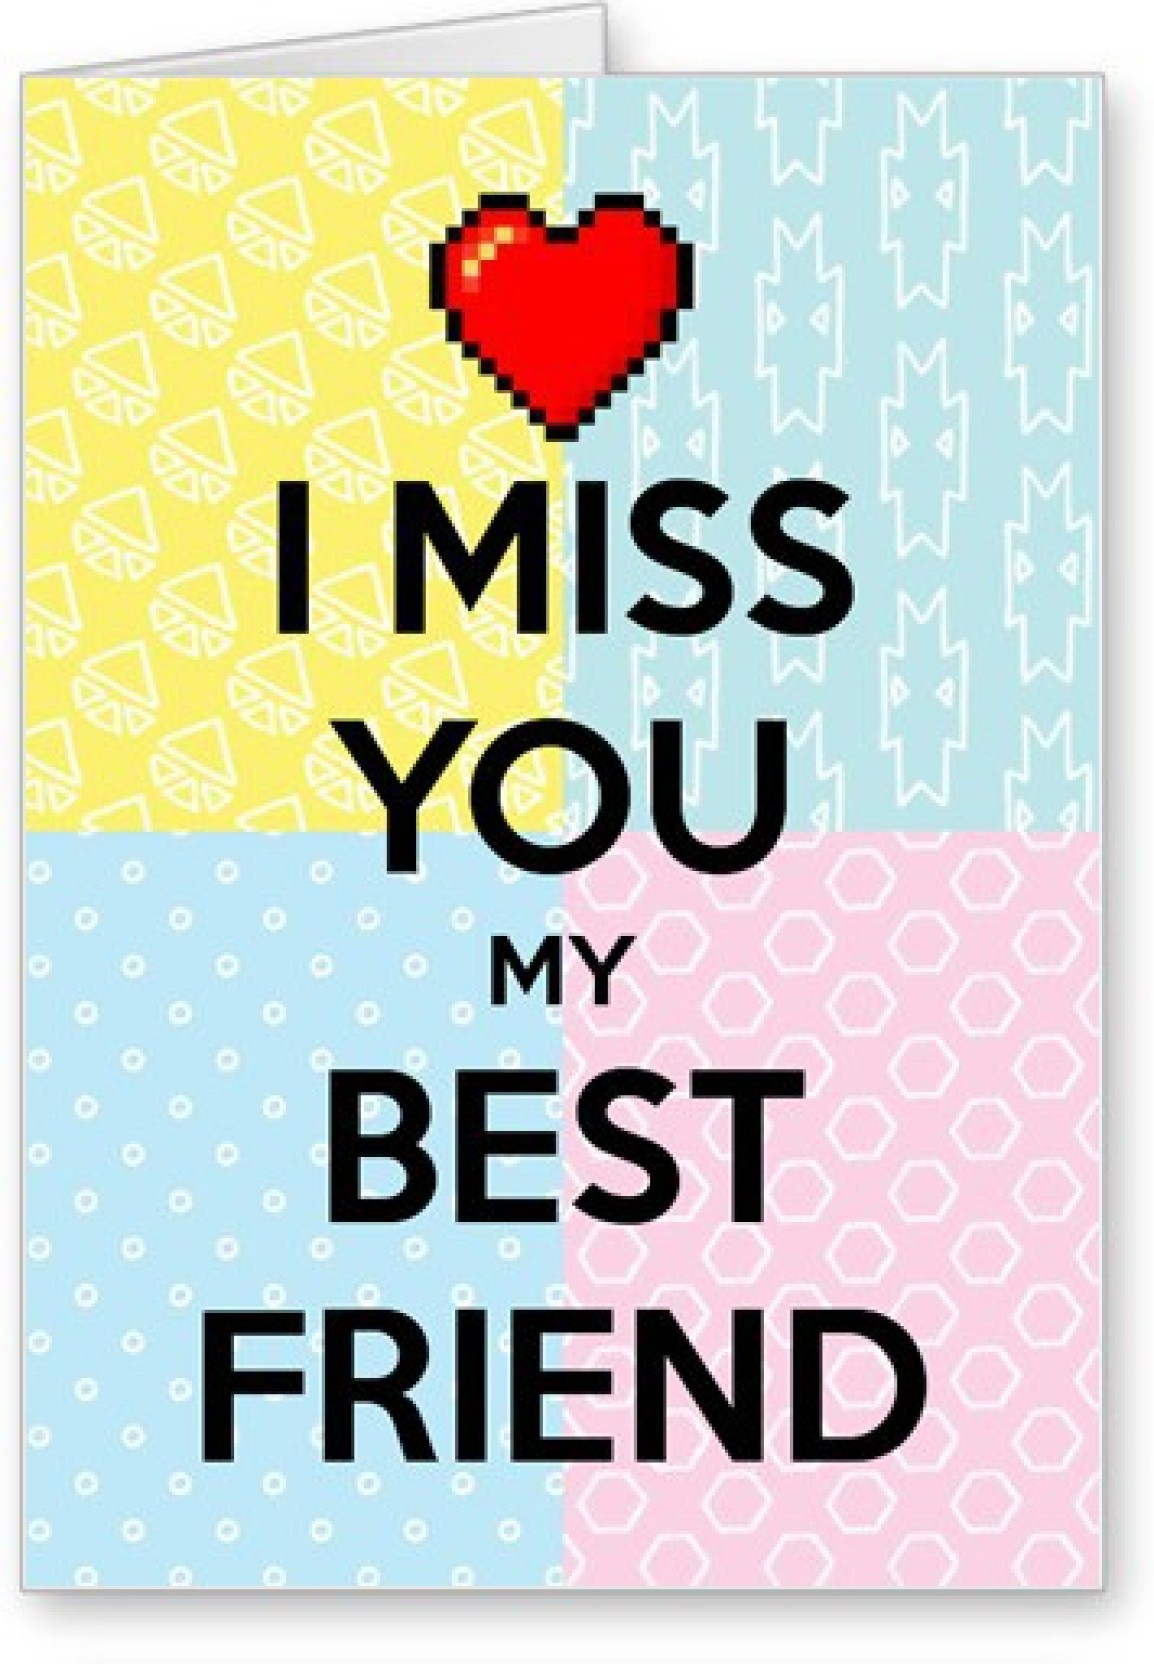 Lolprint Miss You Friendship Day Greeting Card Price In India Buy